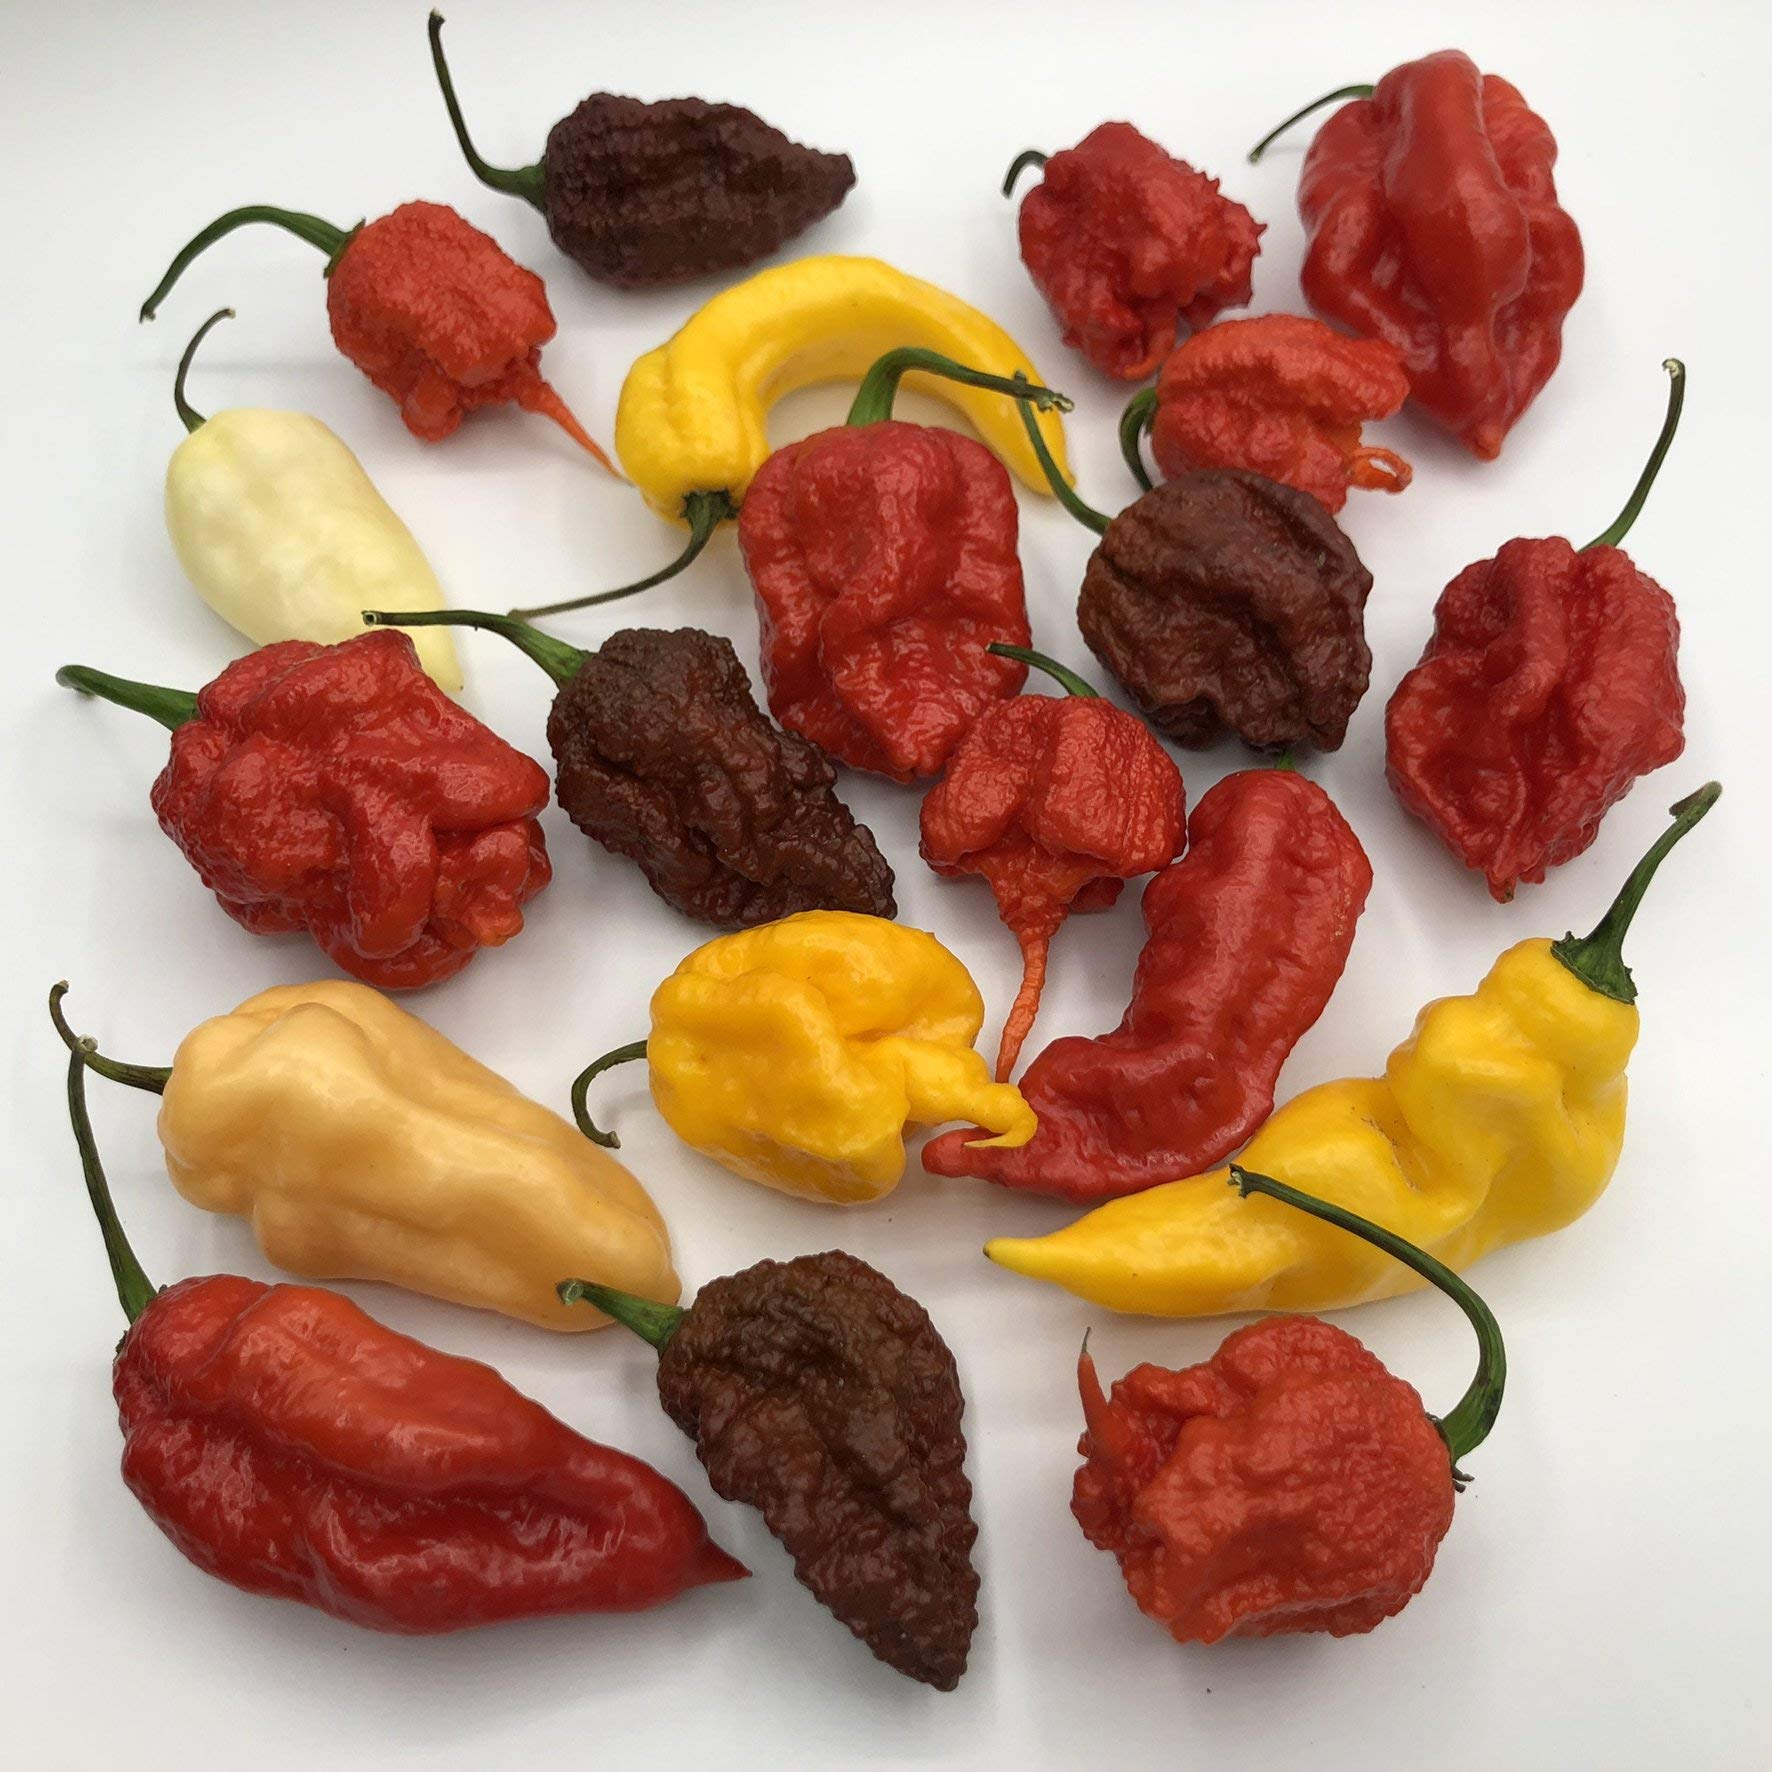 Mixed Box of Fresh Super-Hot Peppers - from Bohica Pepper Hut: Reapers, Ghost, Scorpion, ETC. by Bohica Pepper Hut